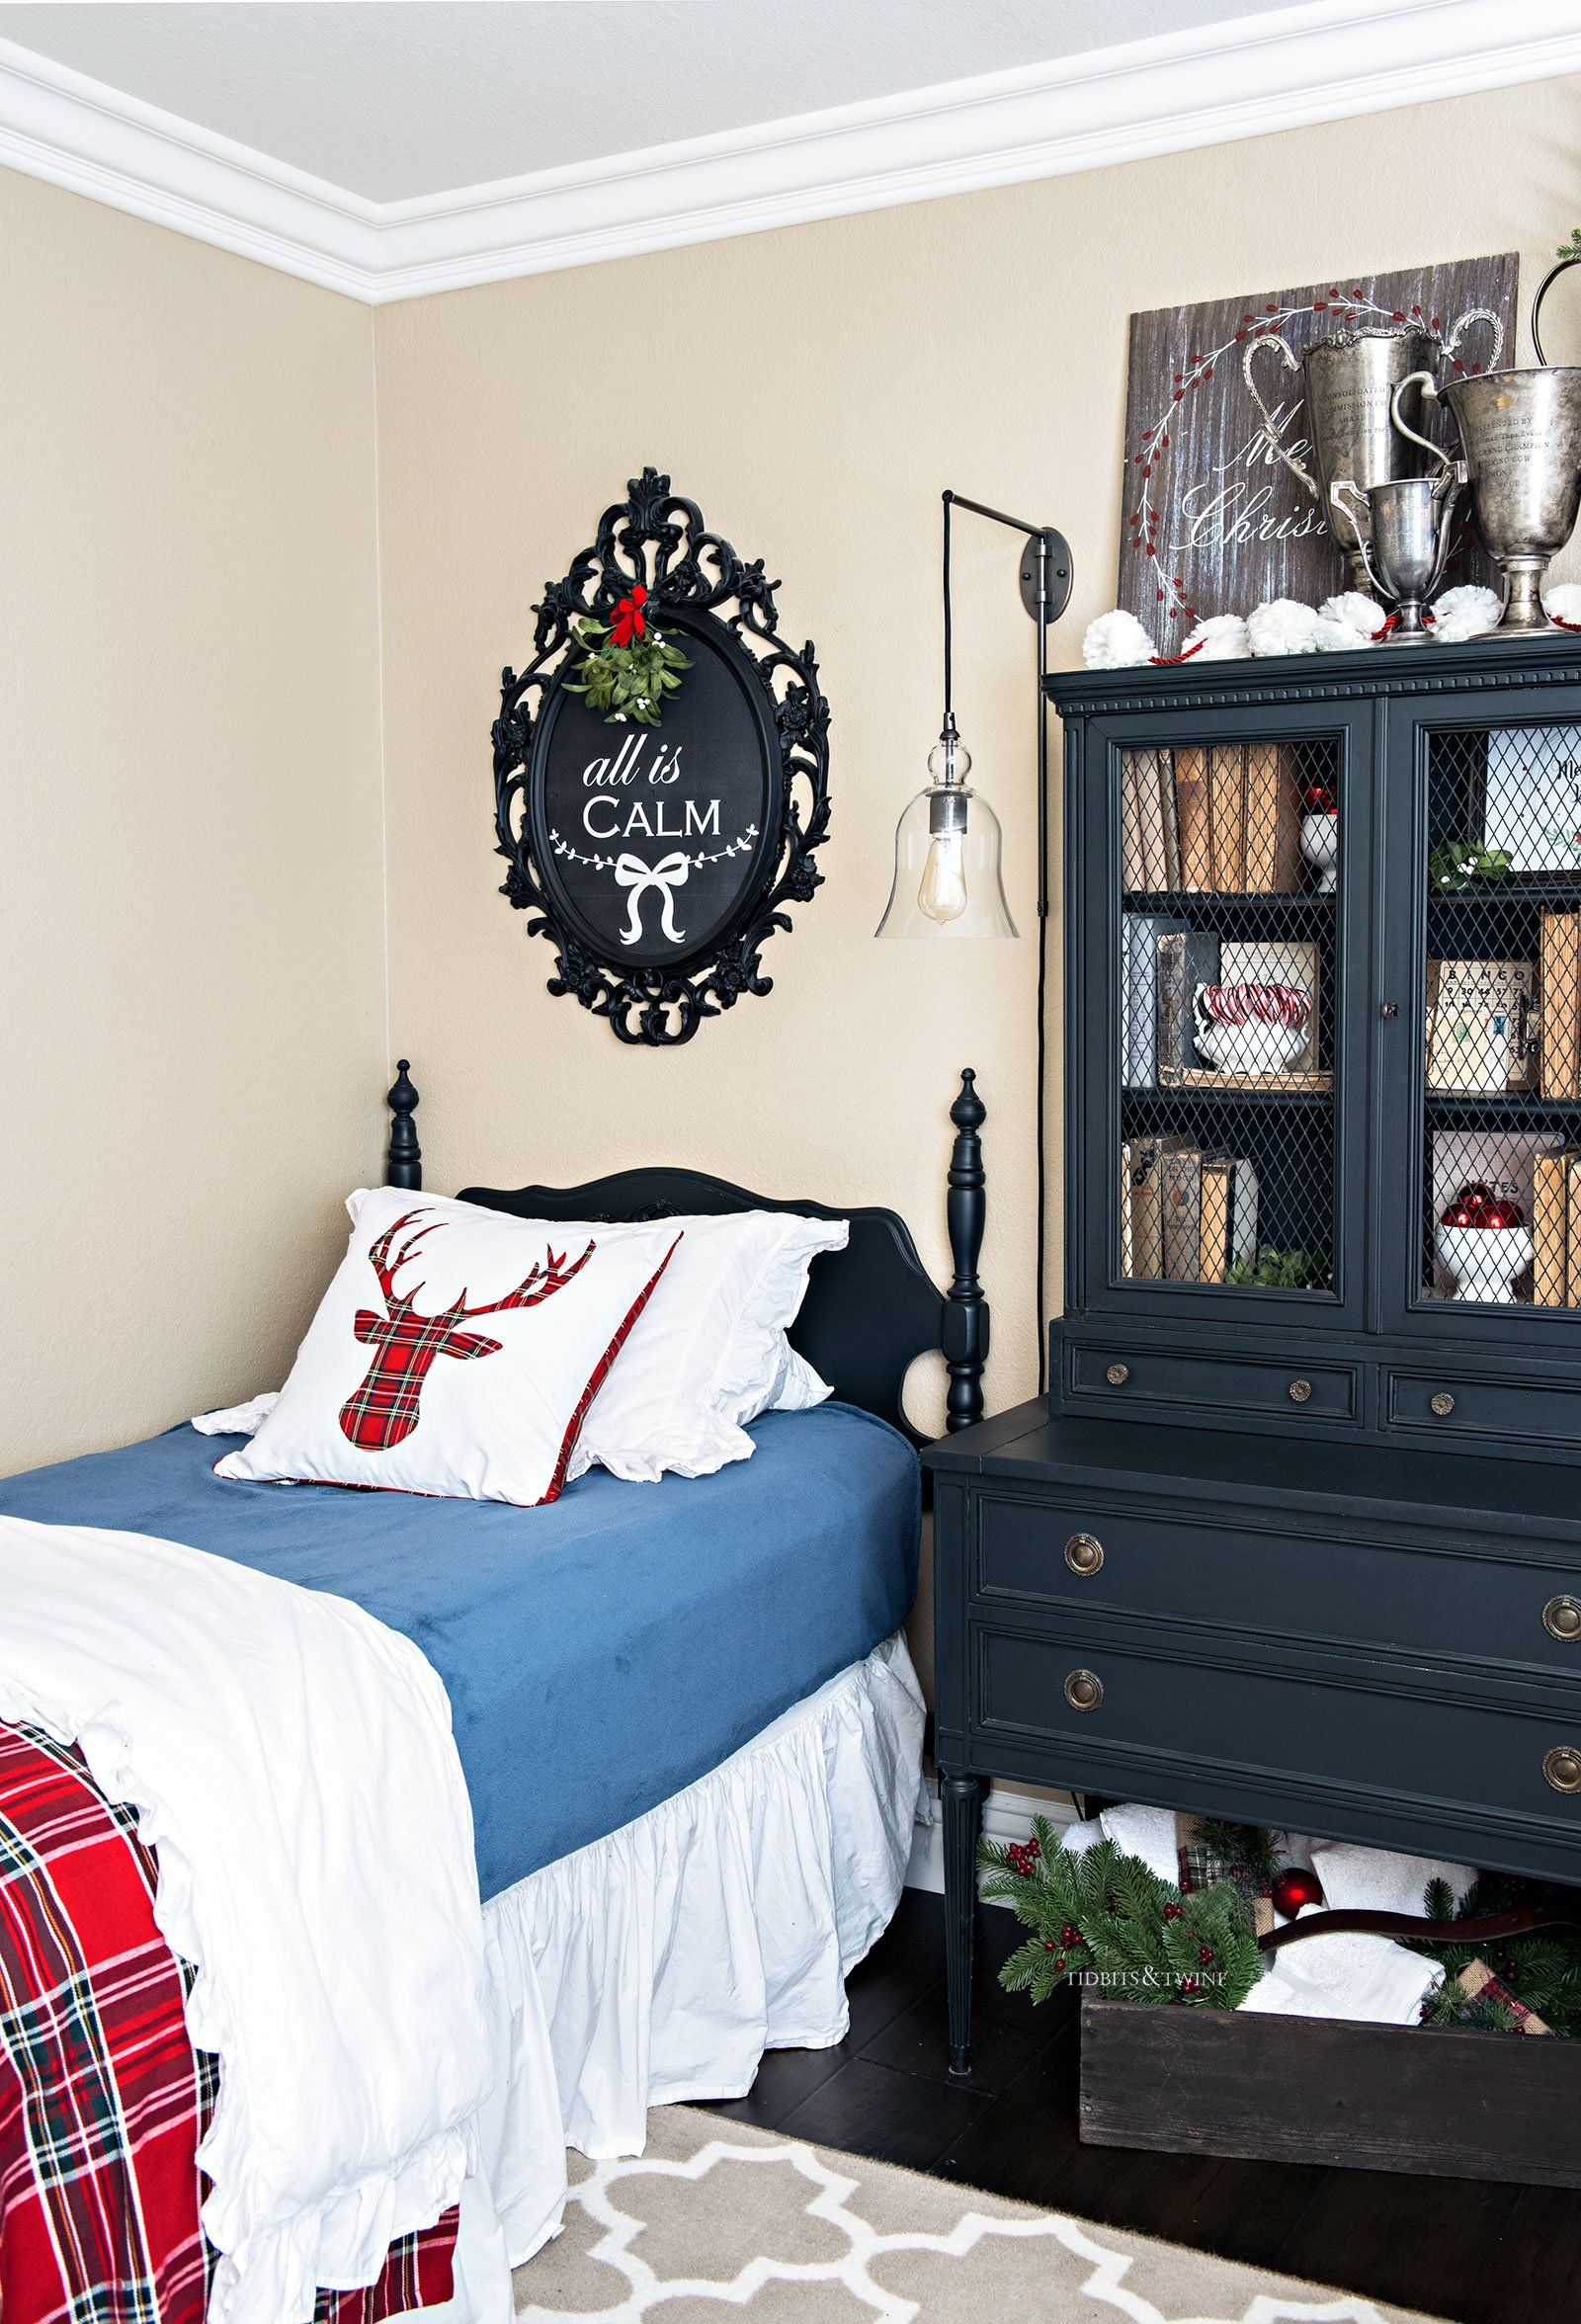 Christmas decor in the guest bedroom